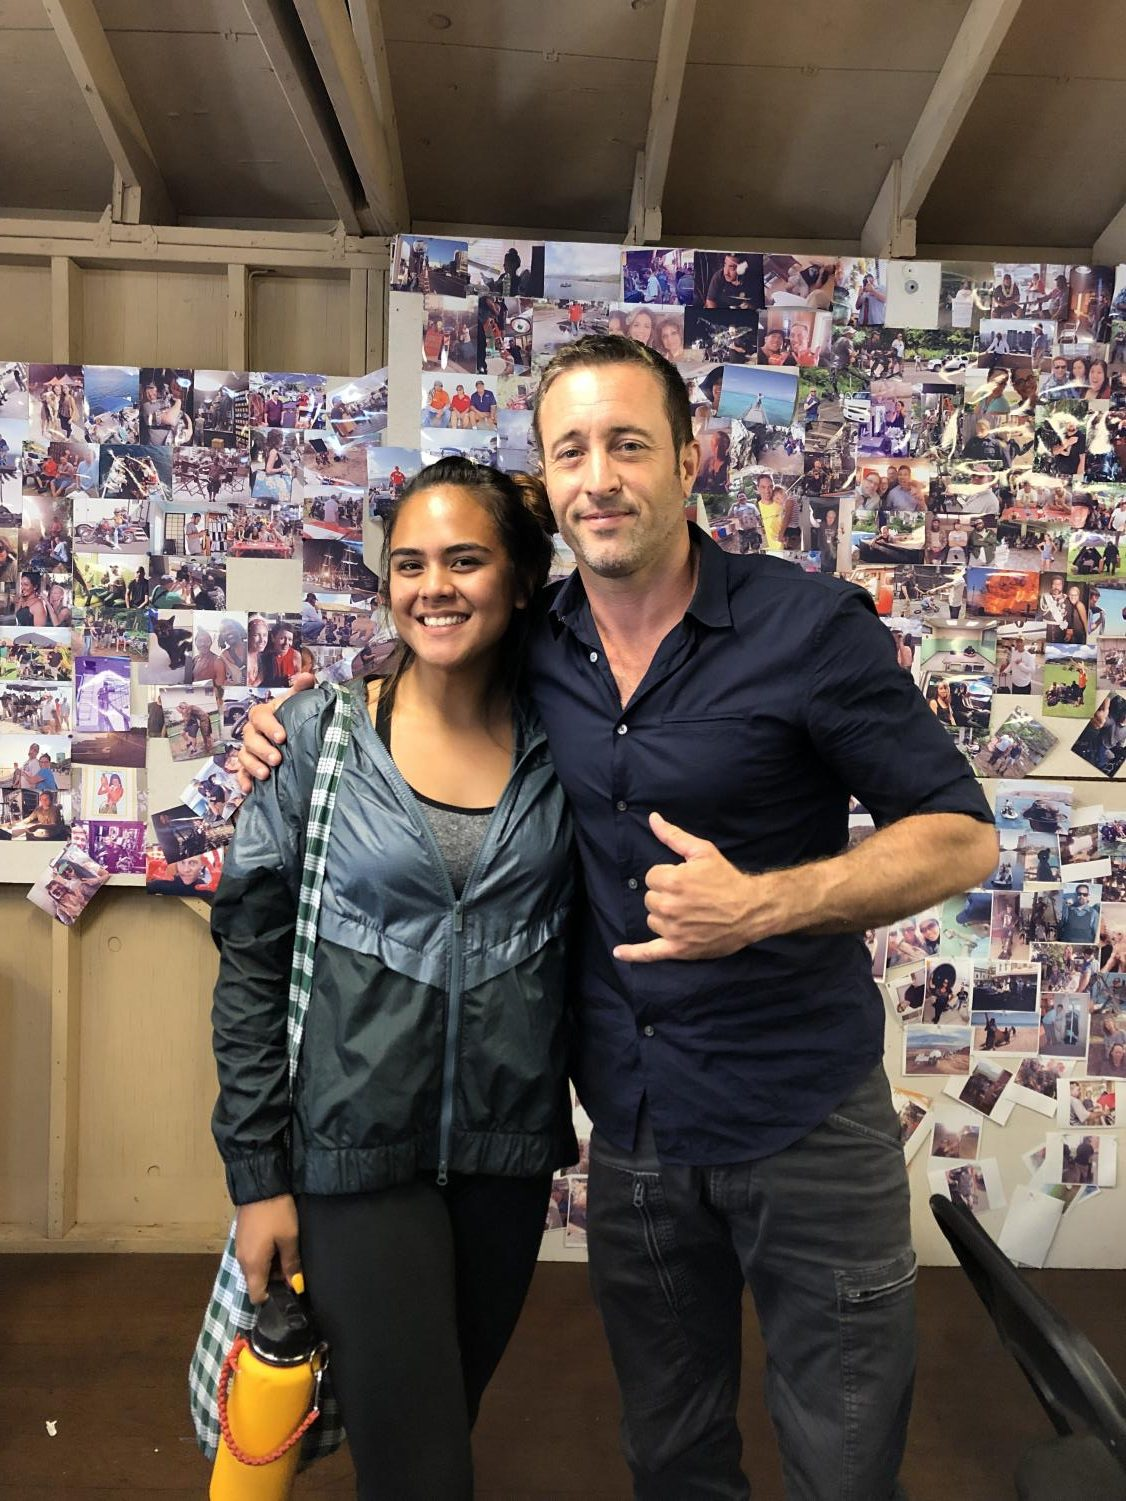 """After working on set for the series """"Hawaii Five-0,"""" I got to meet actor Alex O'Loughlin, who plays Steve McGarrett. All photos by Rebecca Meyer."""